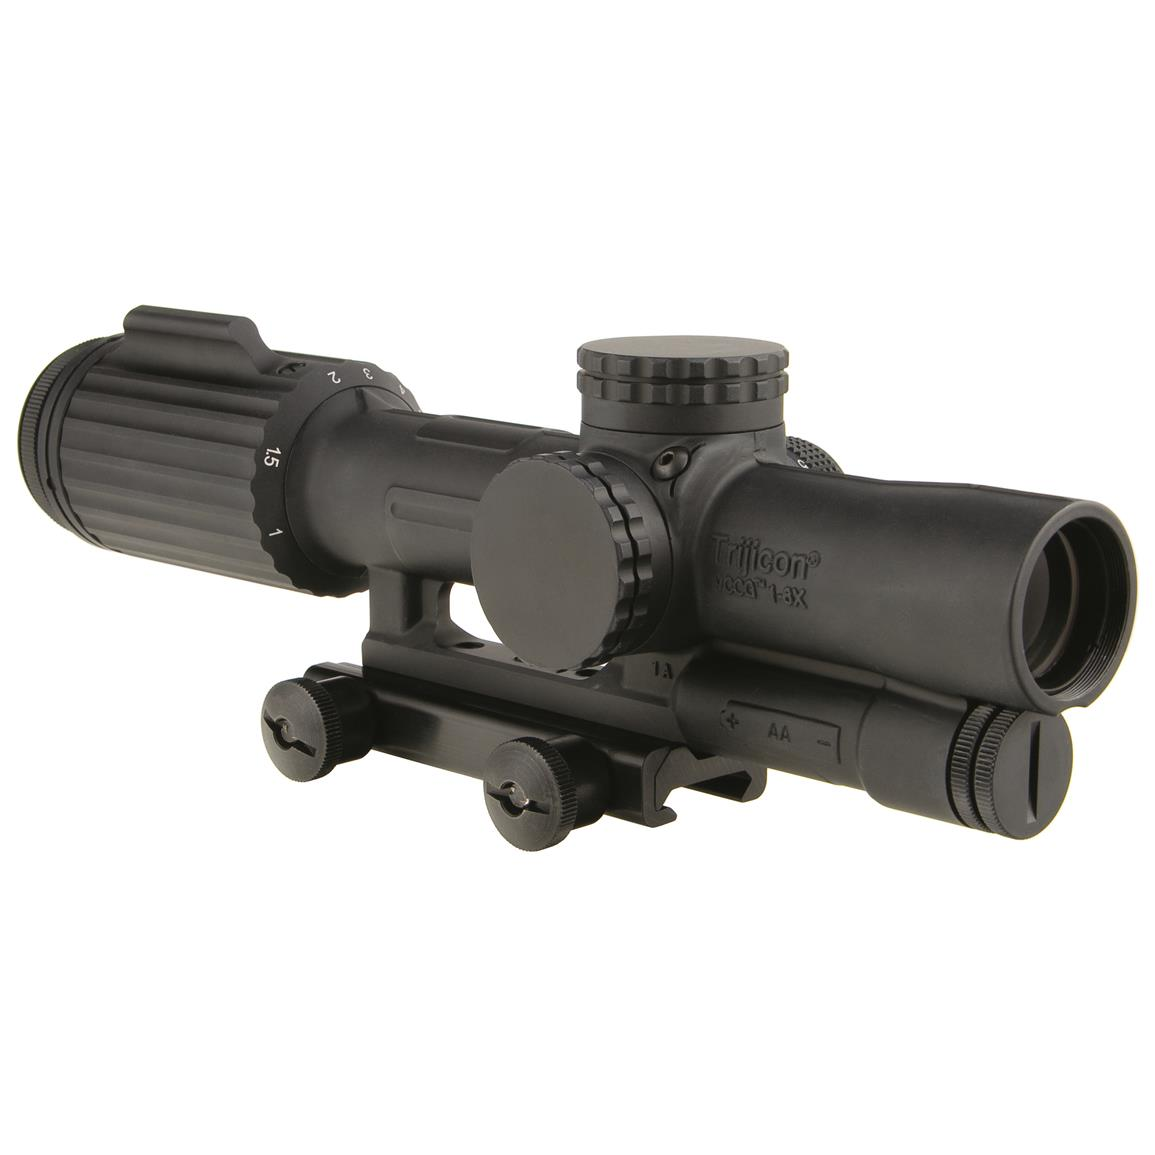 VCOG 1-6x24mm Rifle Scope with Red Segmented Circle / Crosshair, .223 / 55 Grain Ballistic Reticle